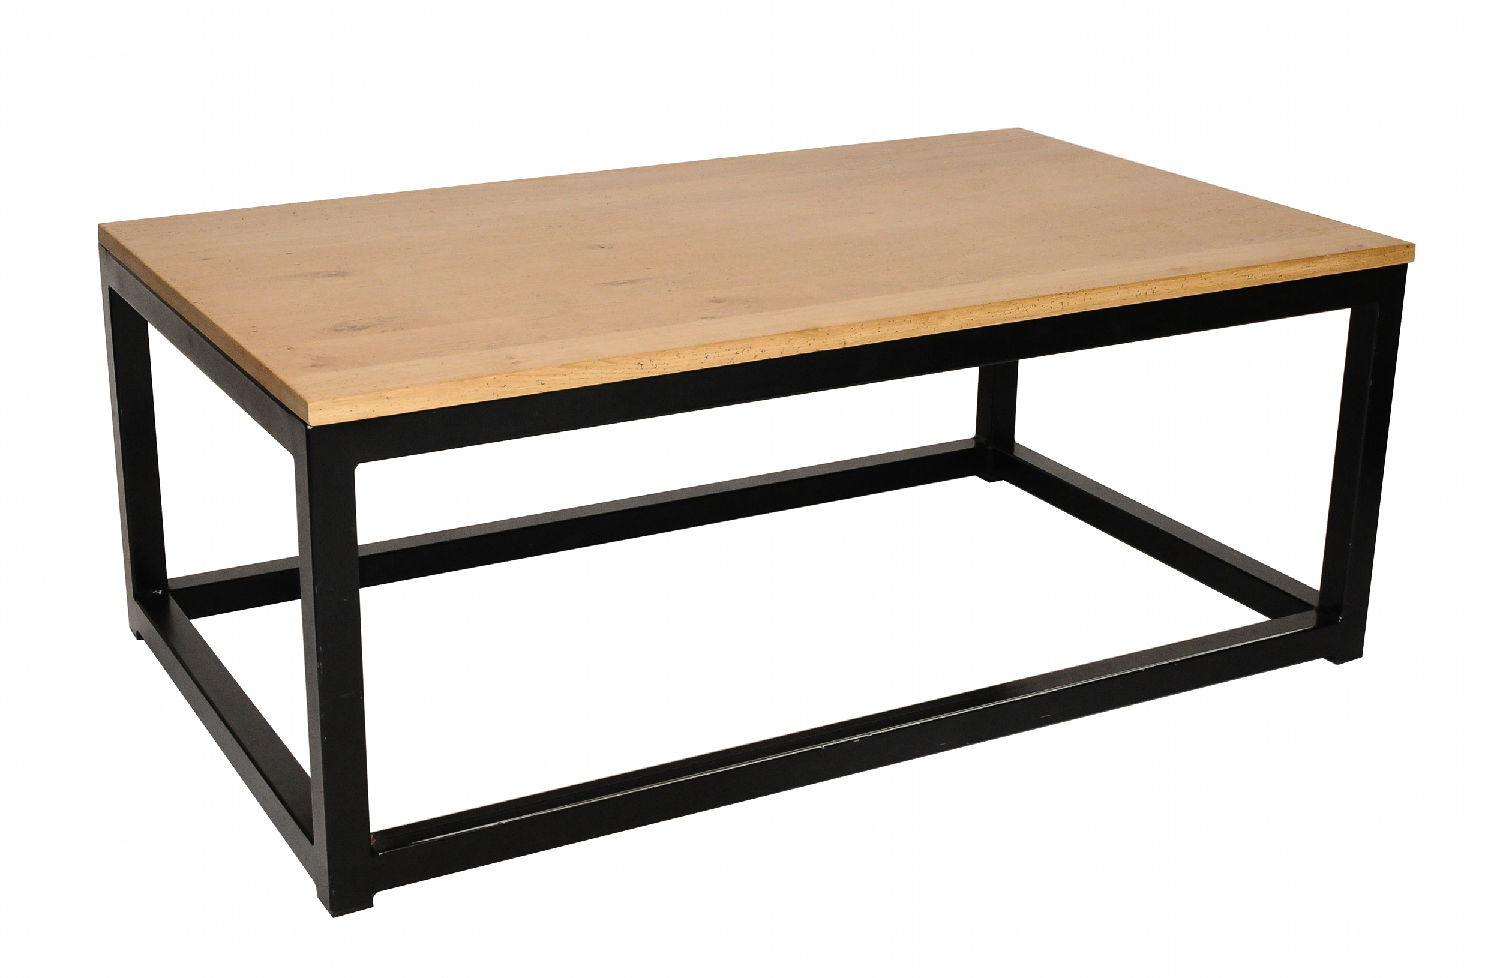 Table basse en fer et bois id es de d coration for Table fer et bois